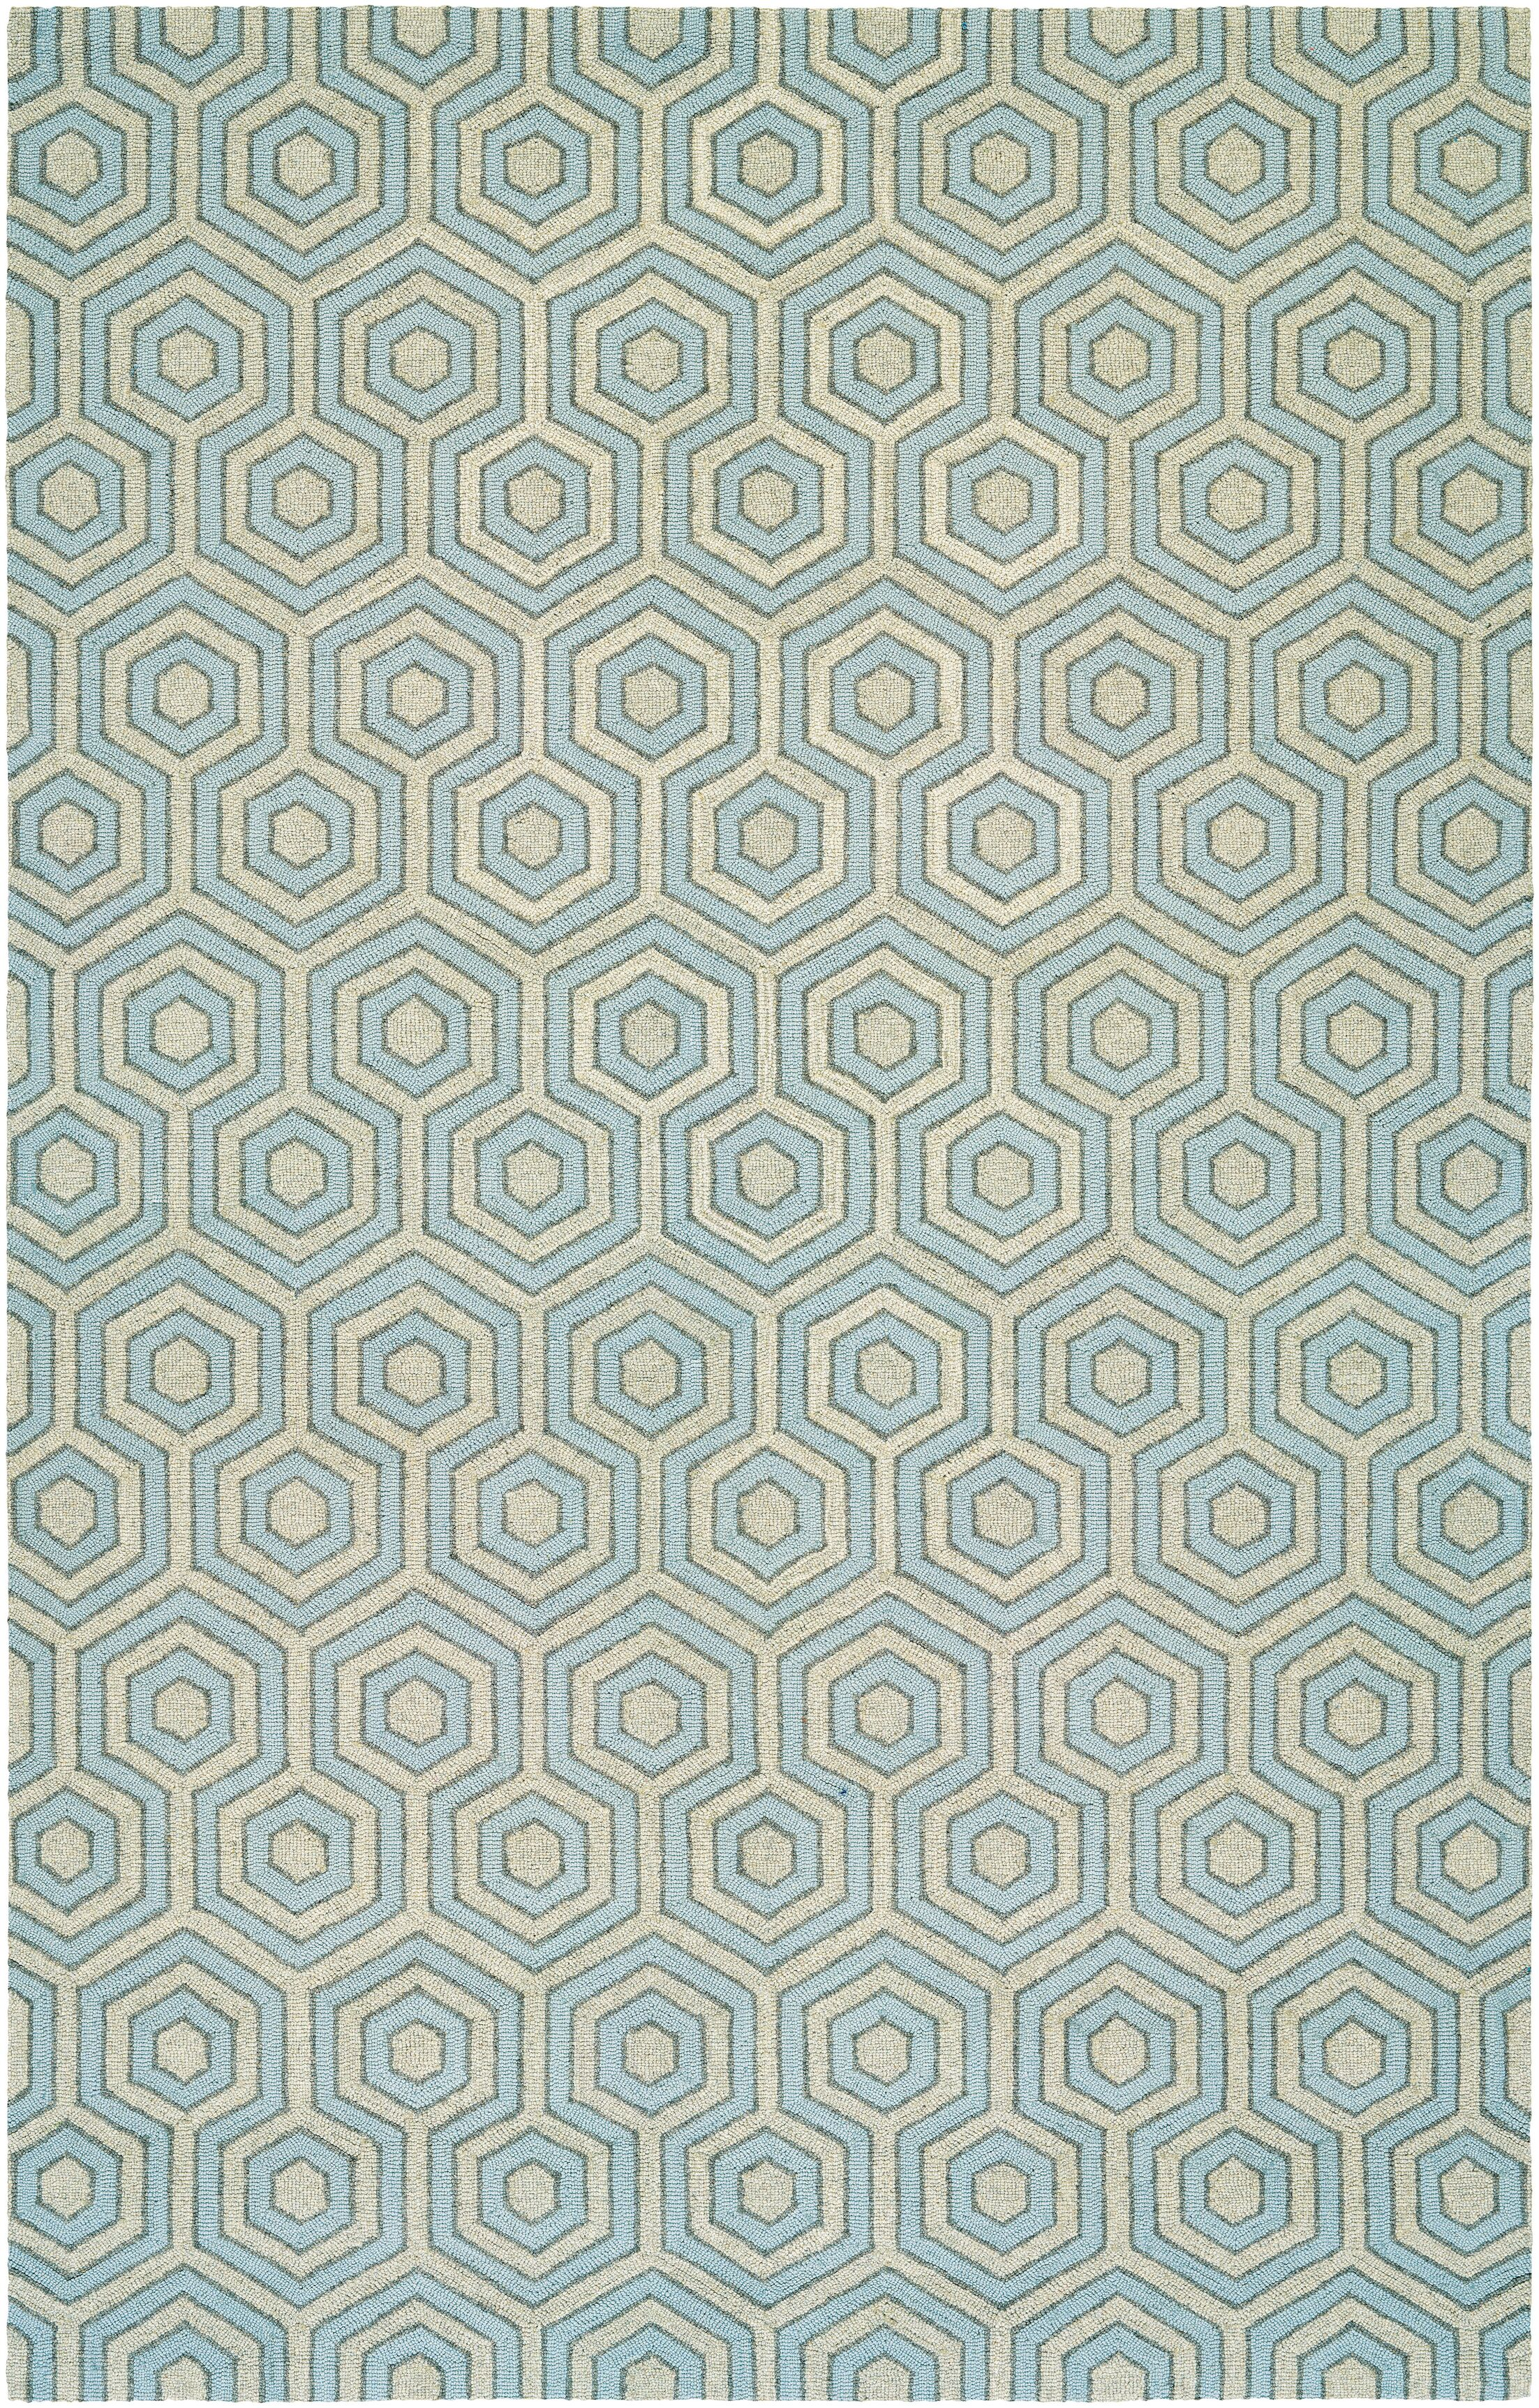 Atticus Hand-Woven Gray/Blue Area Rug Rug Size: Rectangle 9'6